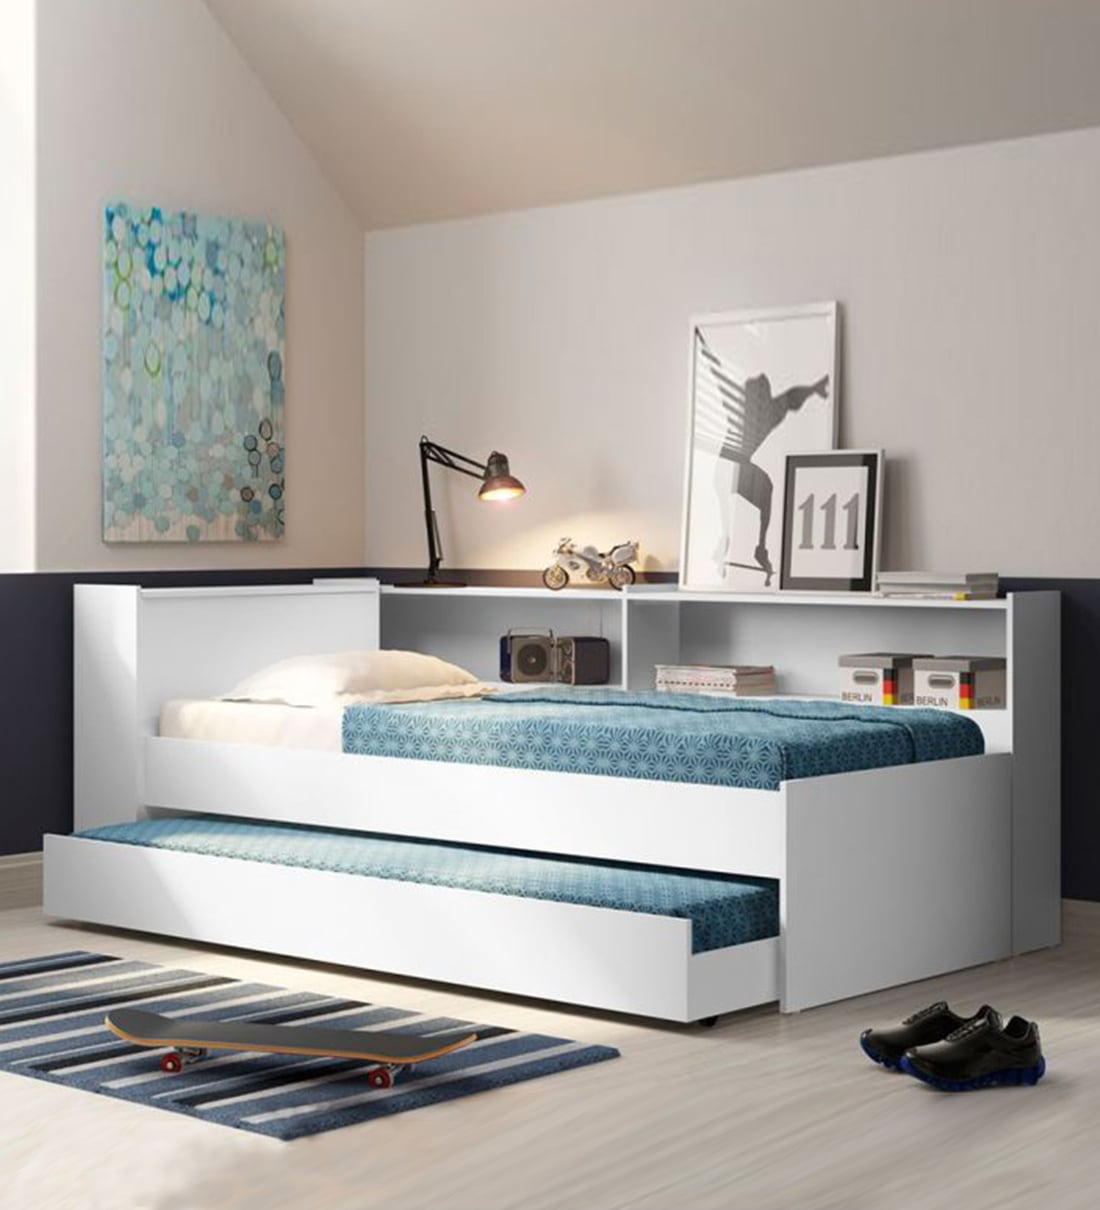 Buy Mchannah Trundle Bed With Side Storage In White Finish By Mollycoddle Online Kids Single Beds Kids Furniture Kids Furniture Pepperfry Product